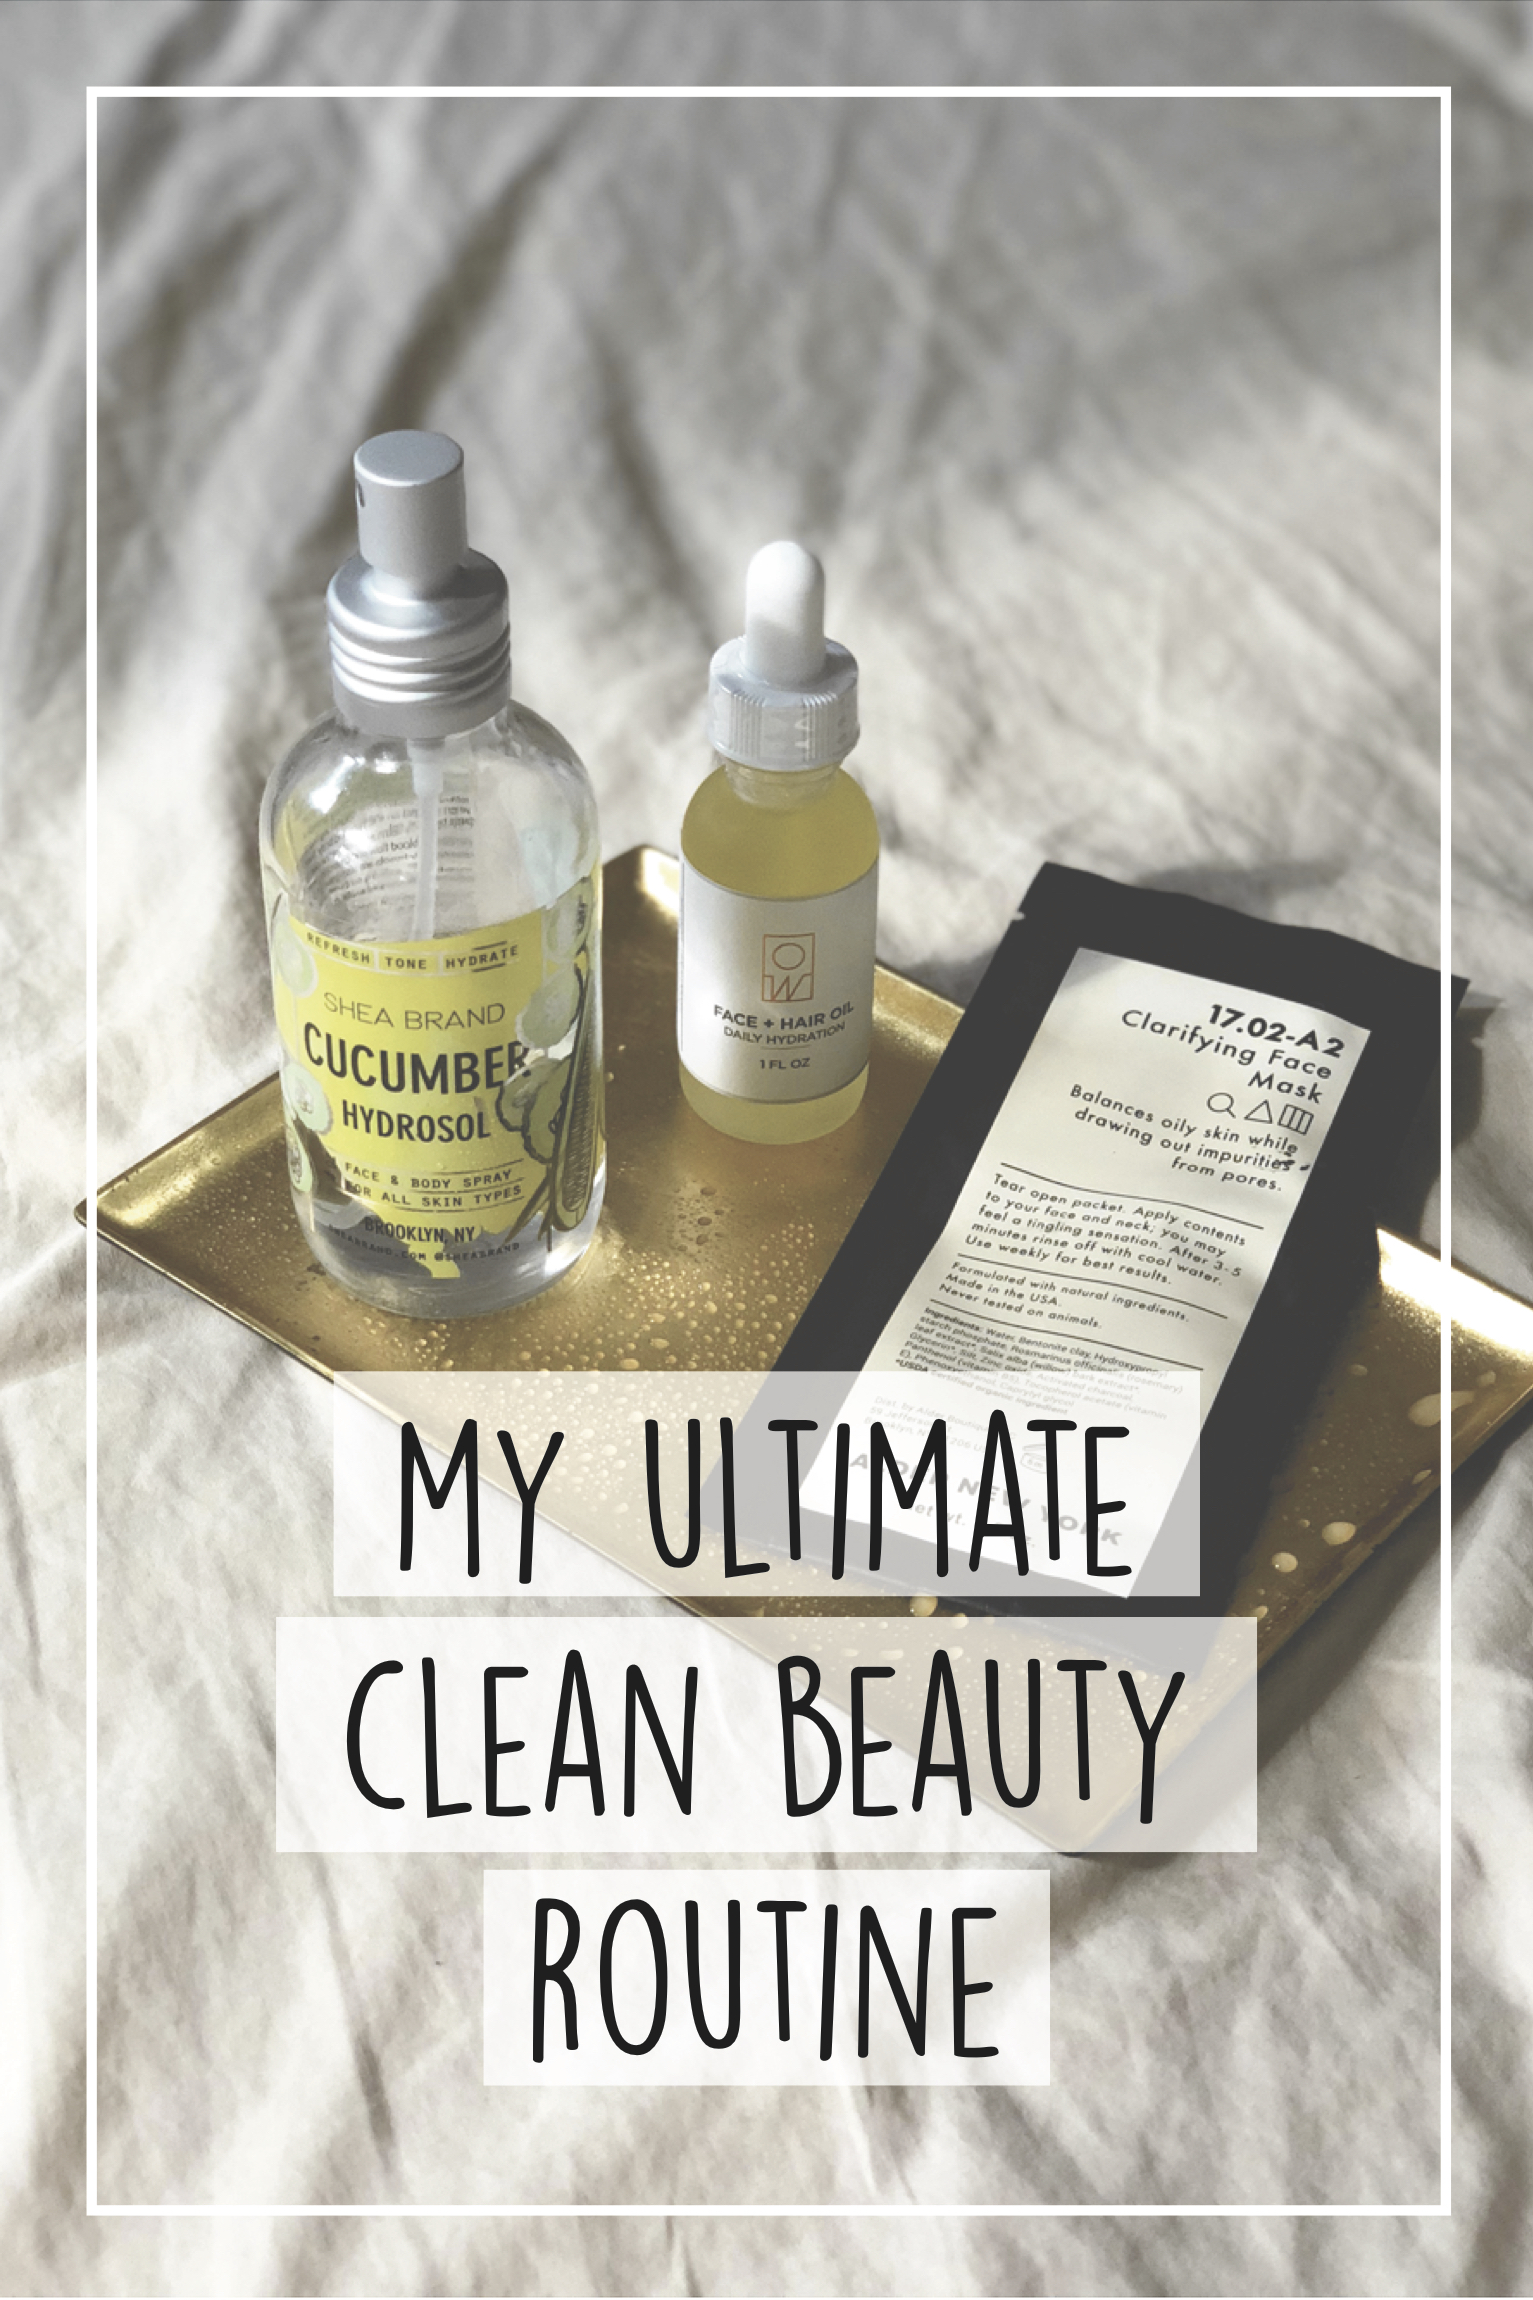 Clean beauty, natural skincare, organic, eco friendly beauty products